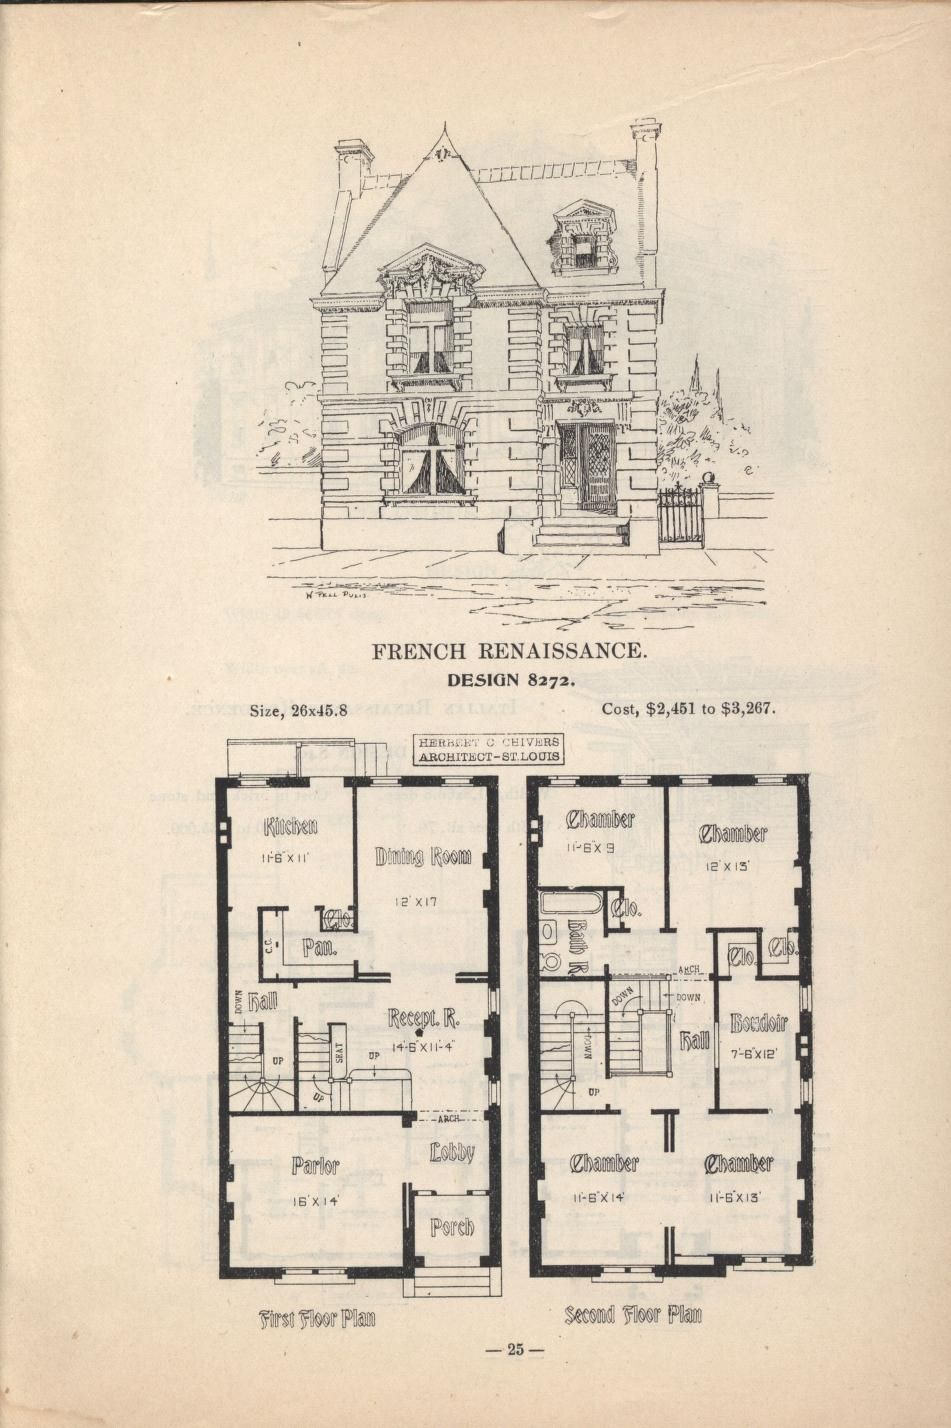 Artistic city houses no 43 Herbert Chivers Free Download Borrow and Streaming Internet Archive